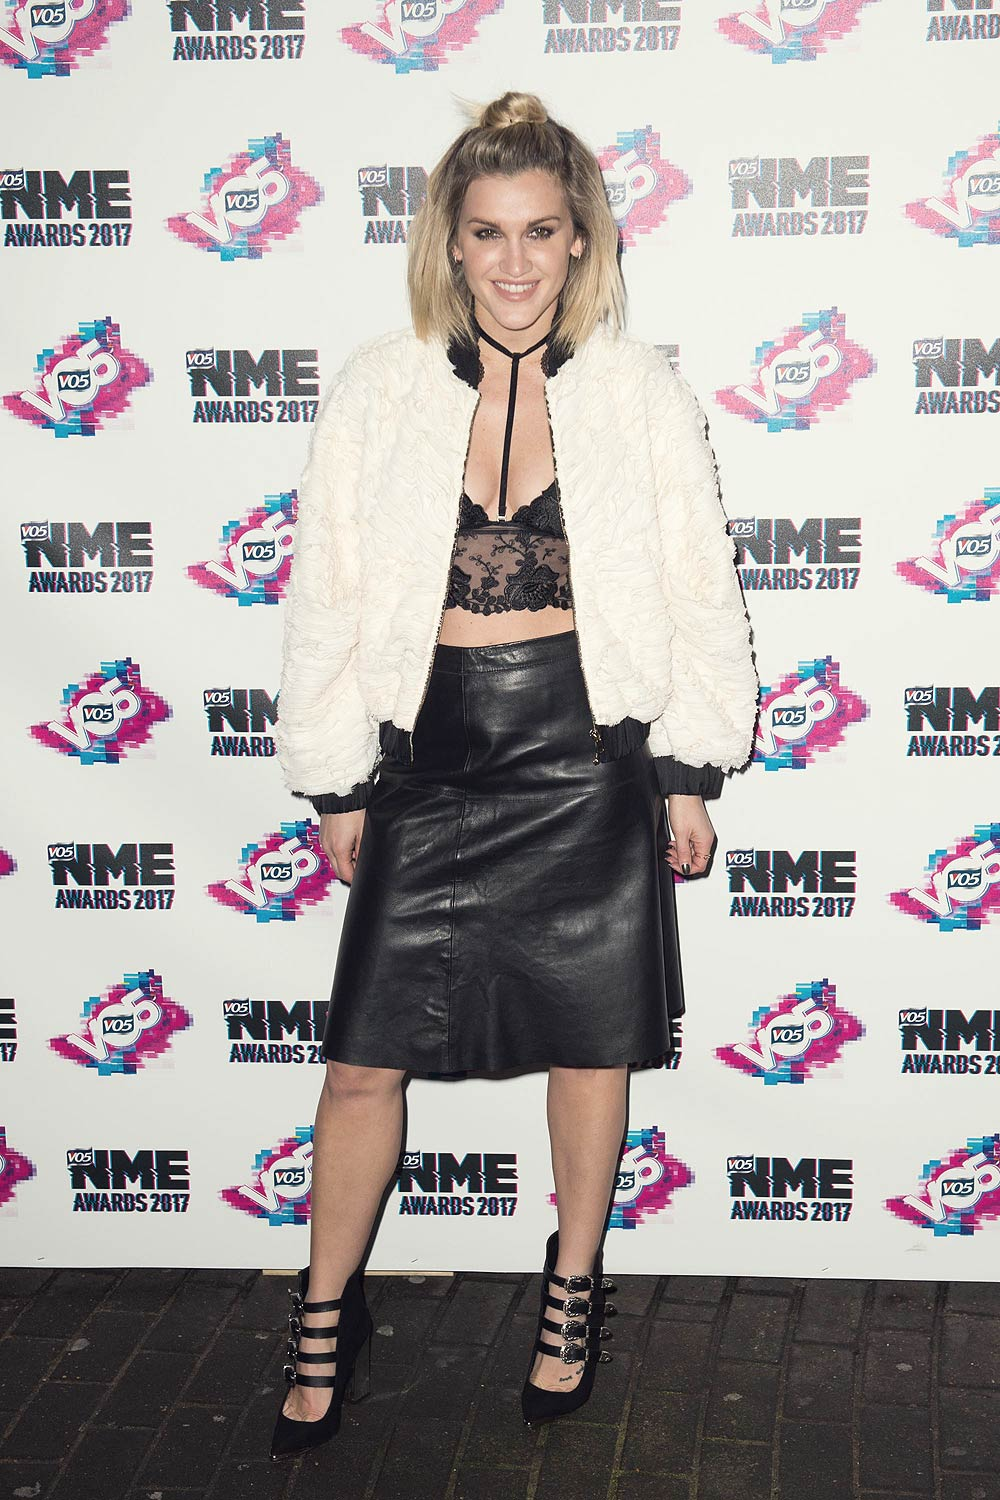 Ashley Roberts attends NME Awards